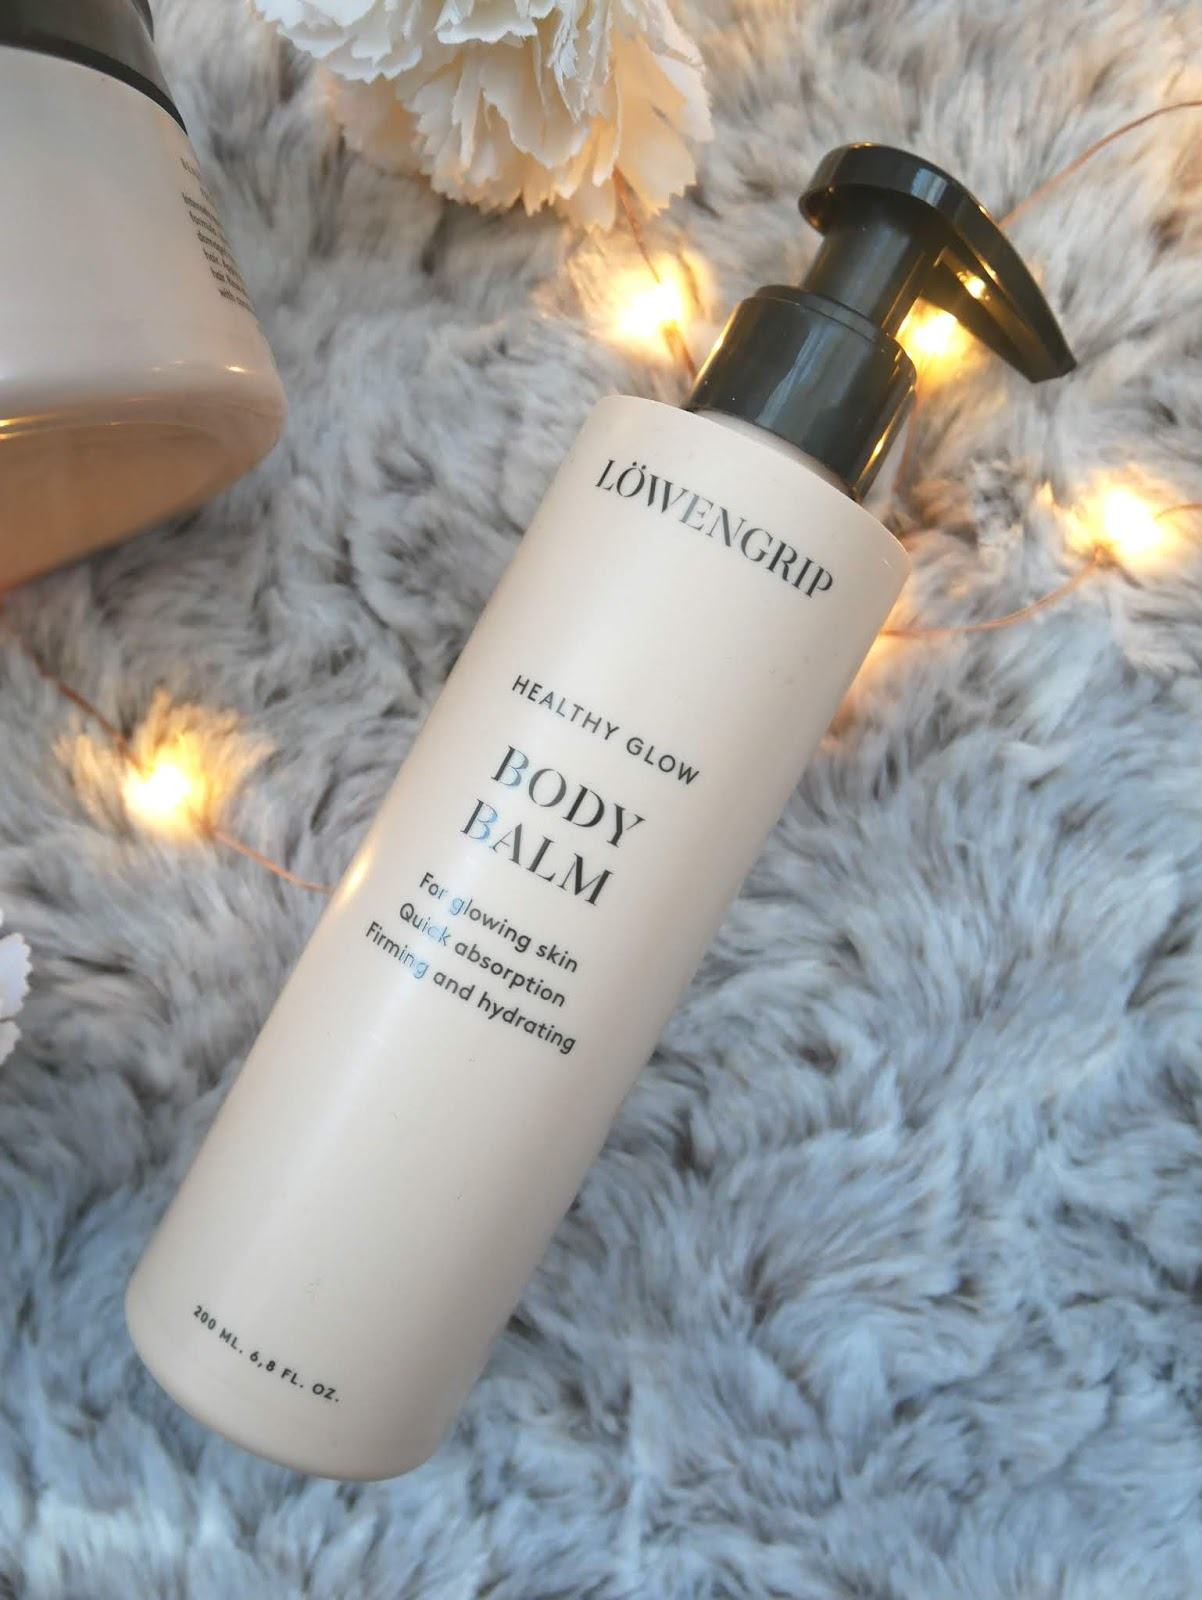 Lowengrip Body Balm Review